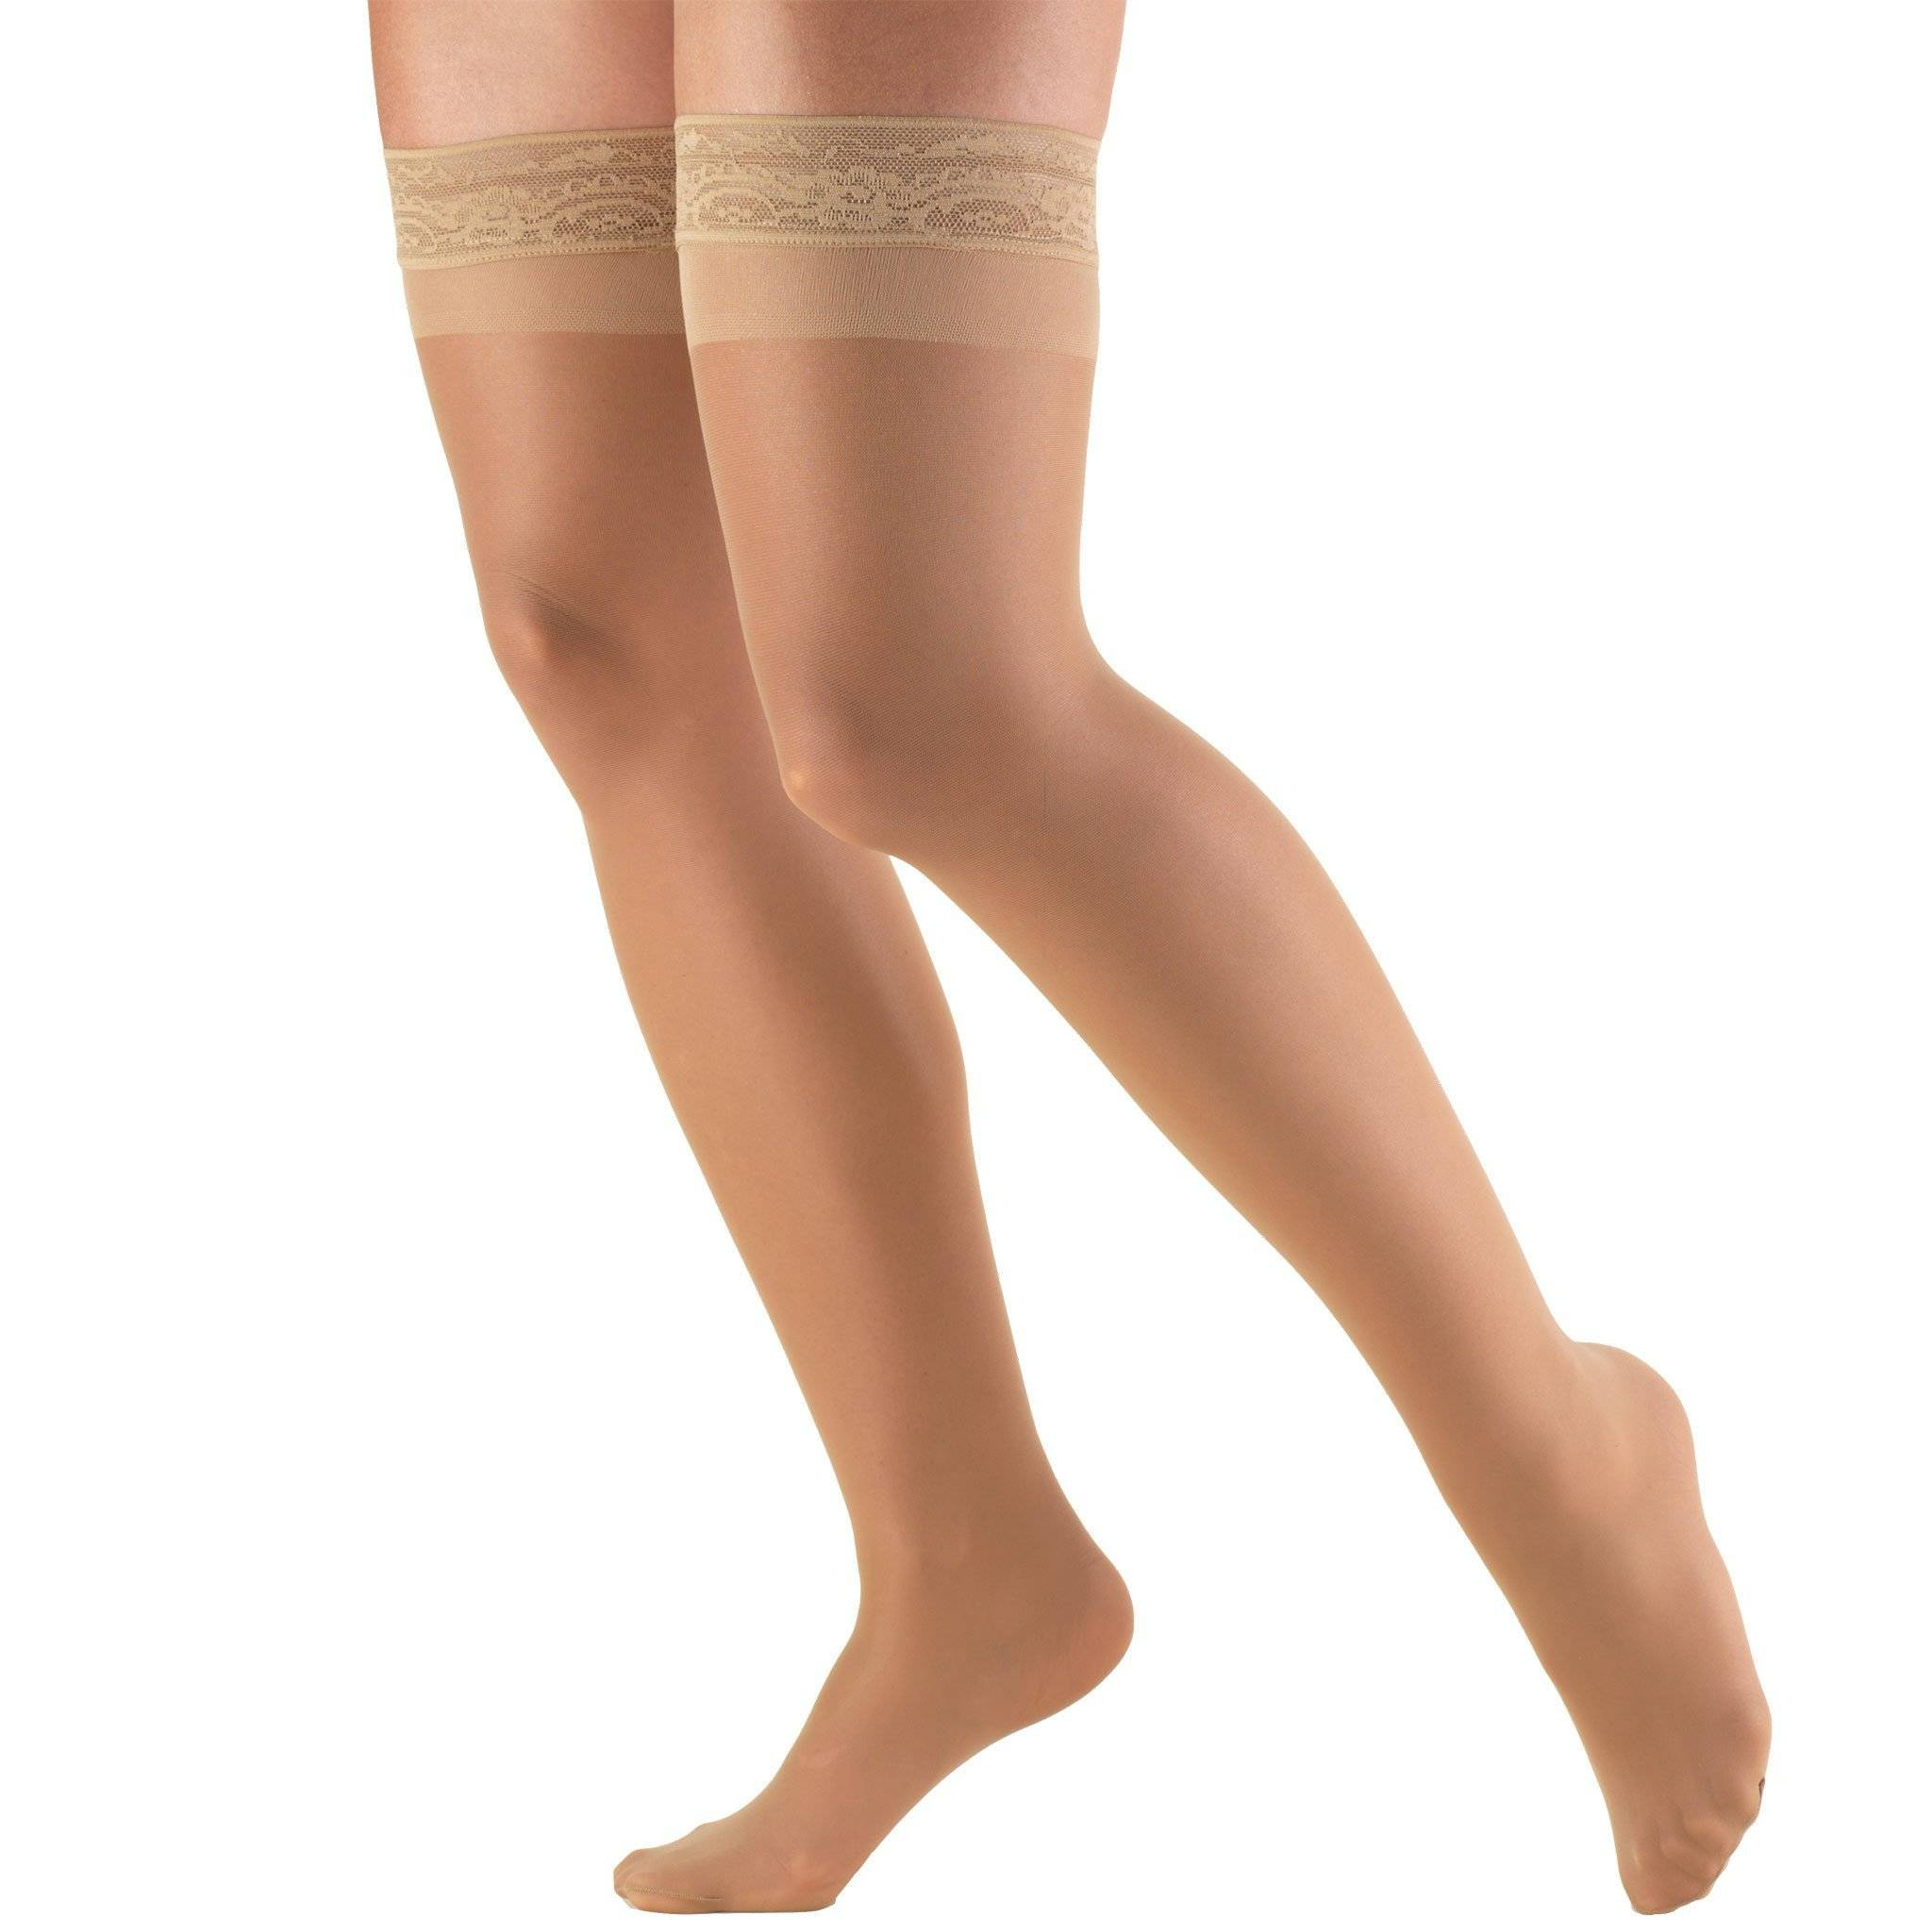 Ladies' Thigh High Closed Toe Sheer Stockings